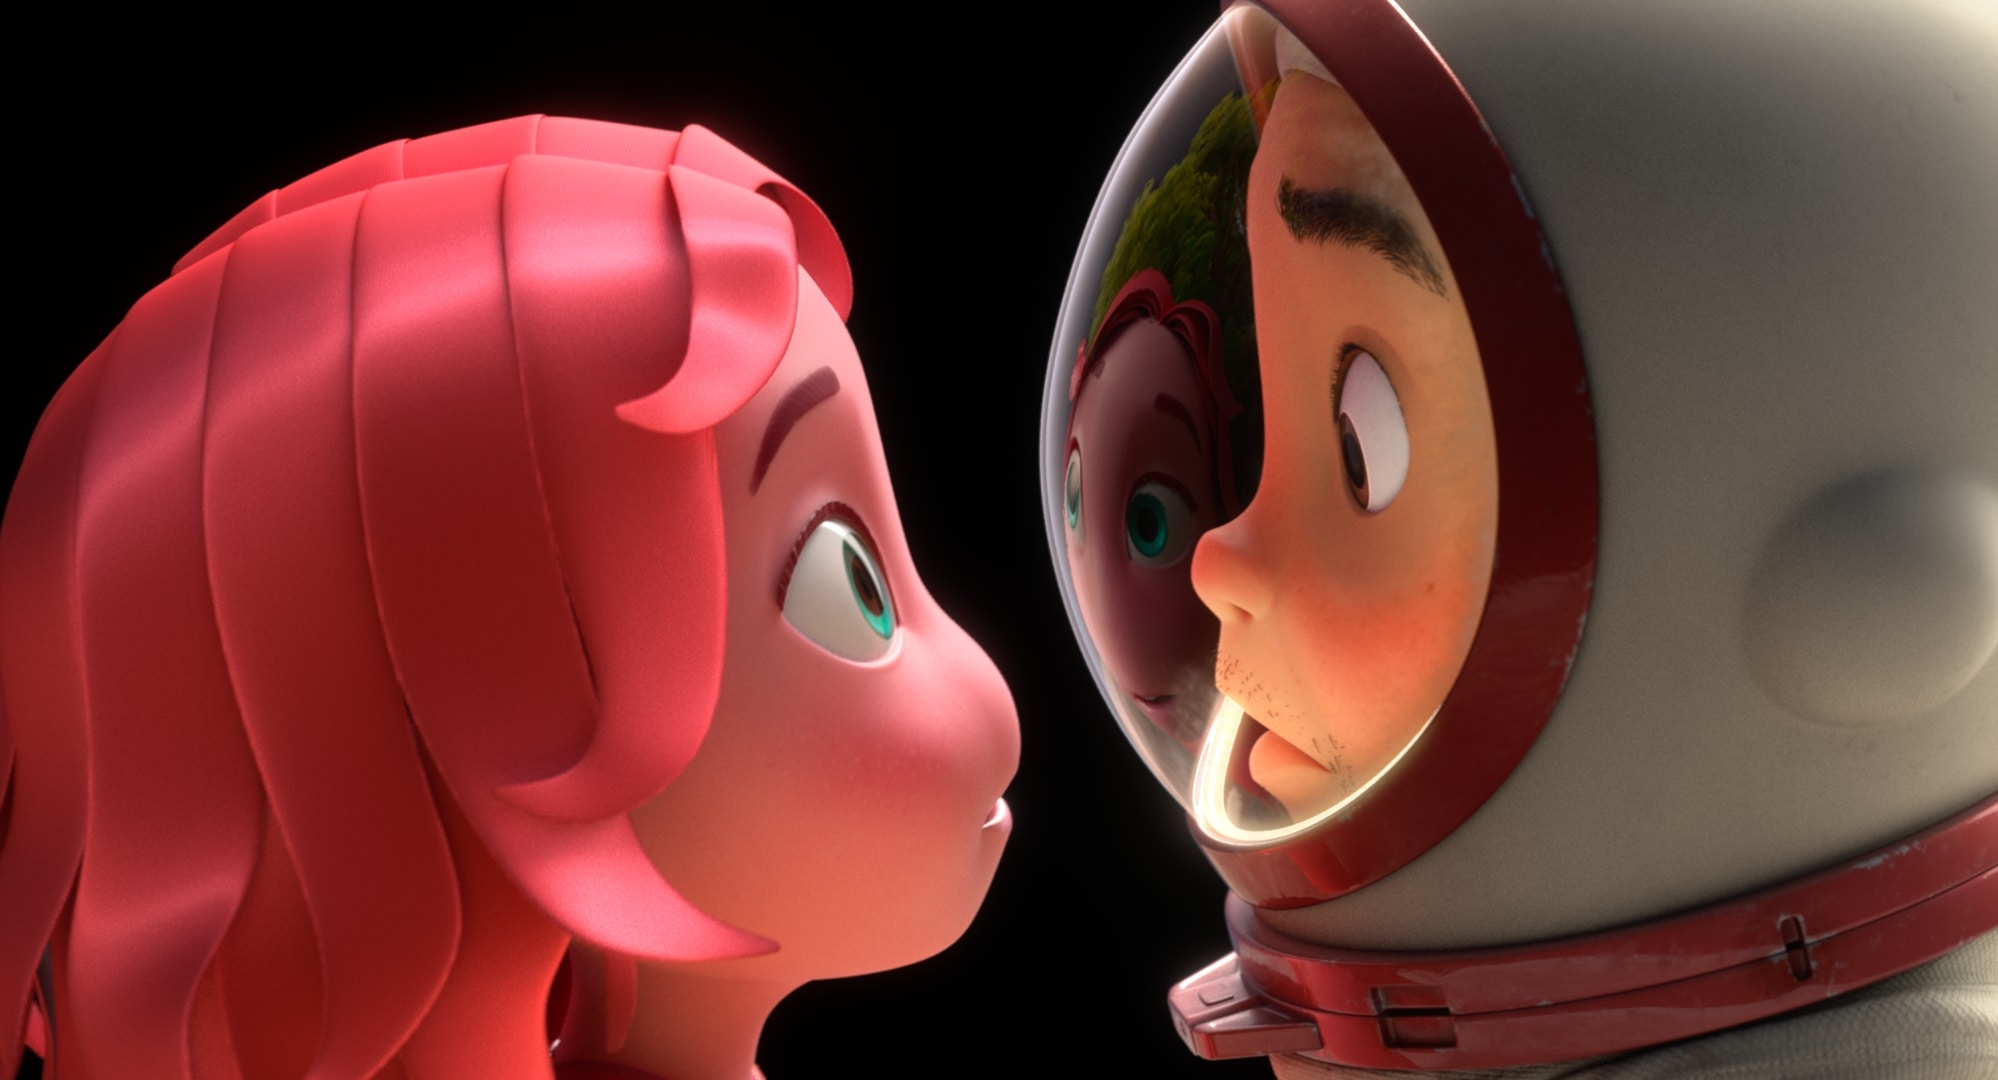 Blush review: Apple TV+'s new animated short wants to take on Pixar.